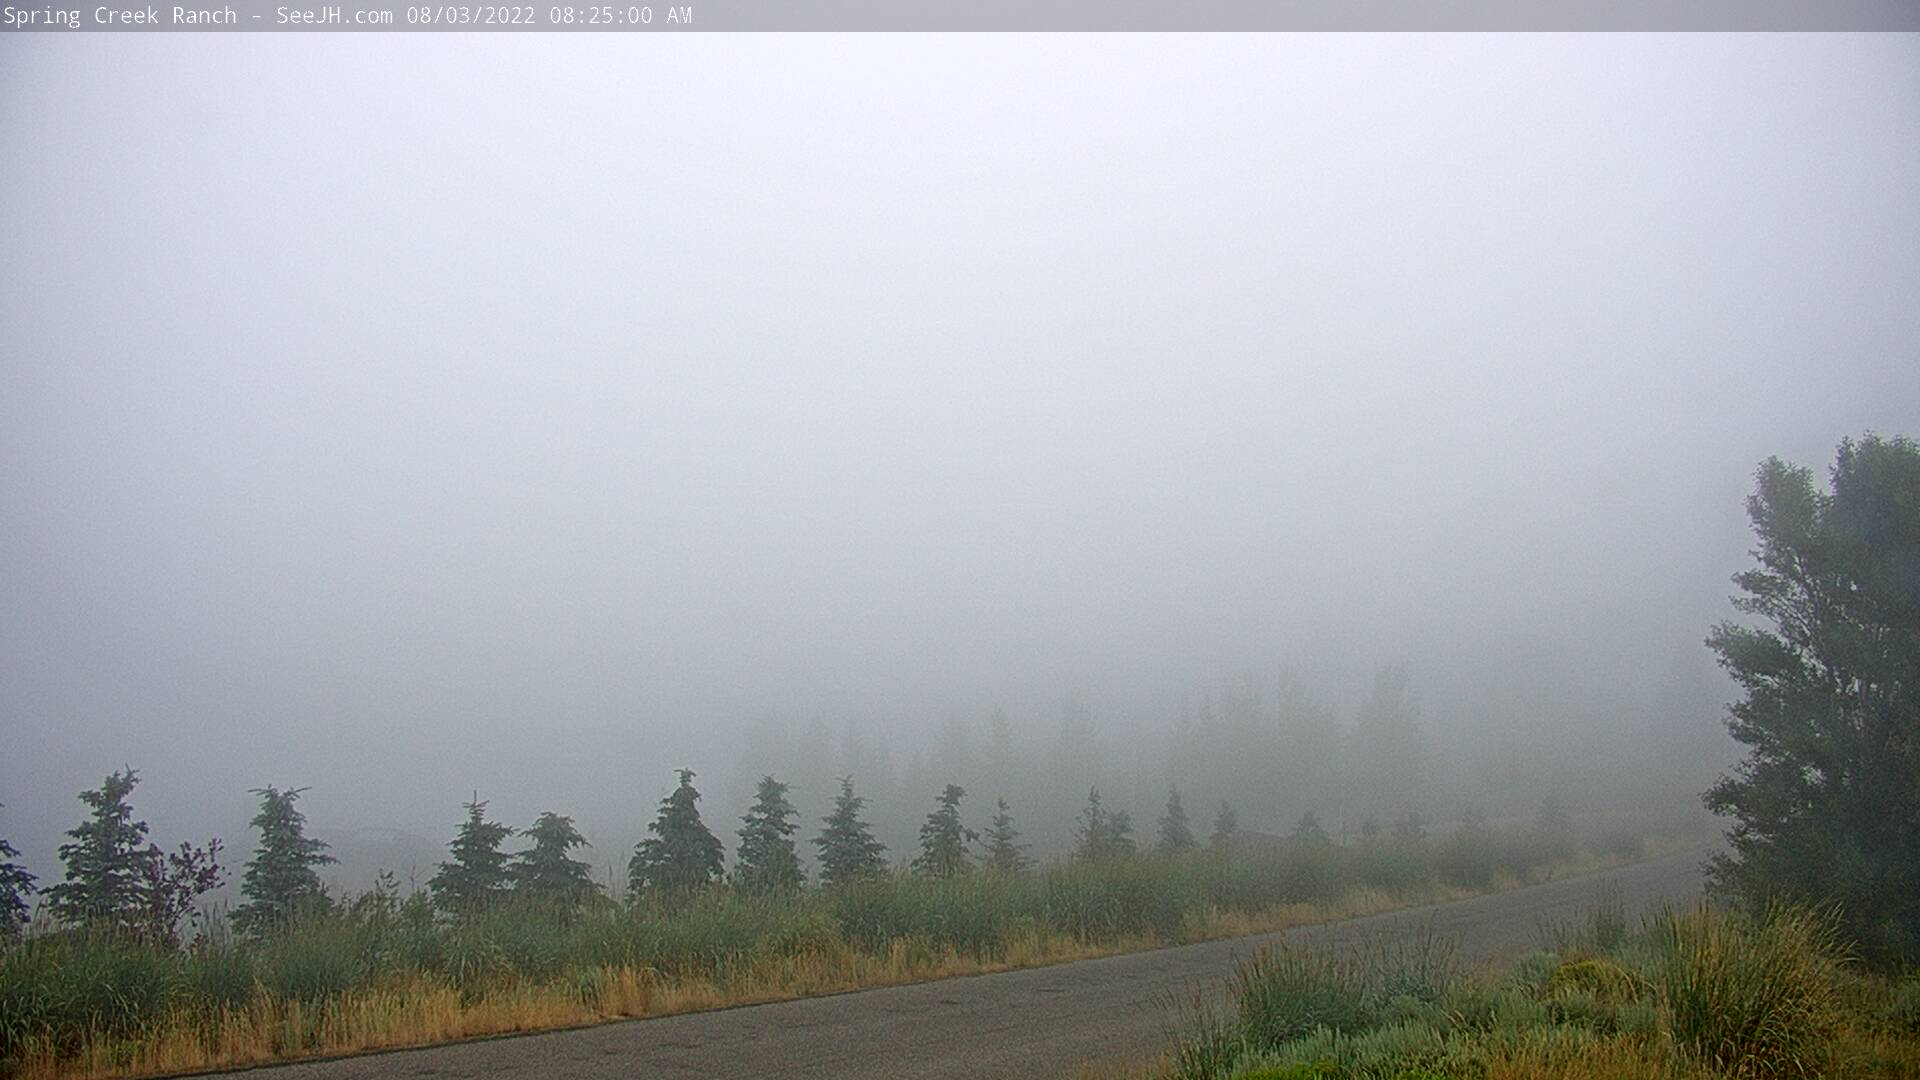 Jackson hole Webcam